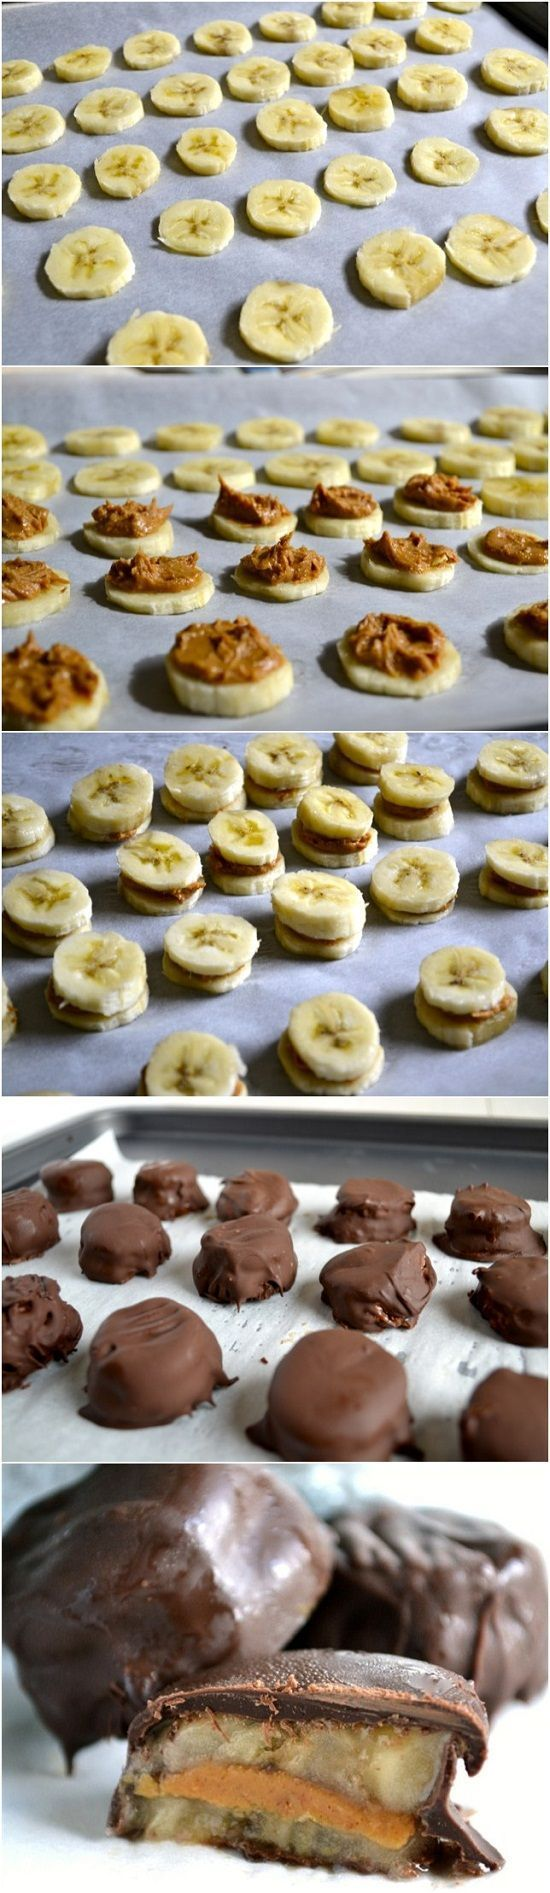 Healthy Frozen Chocolate Peanut Butter Banana Bites-AKA monkey poop! :)